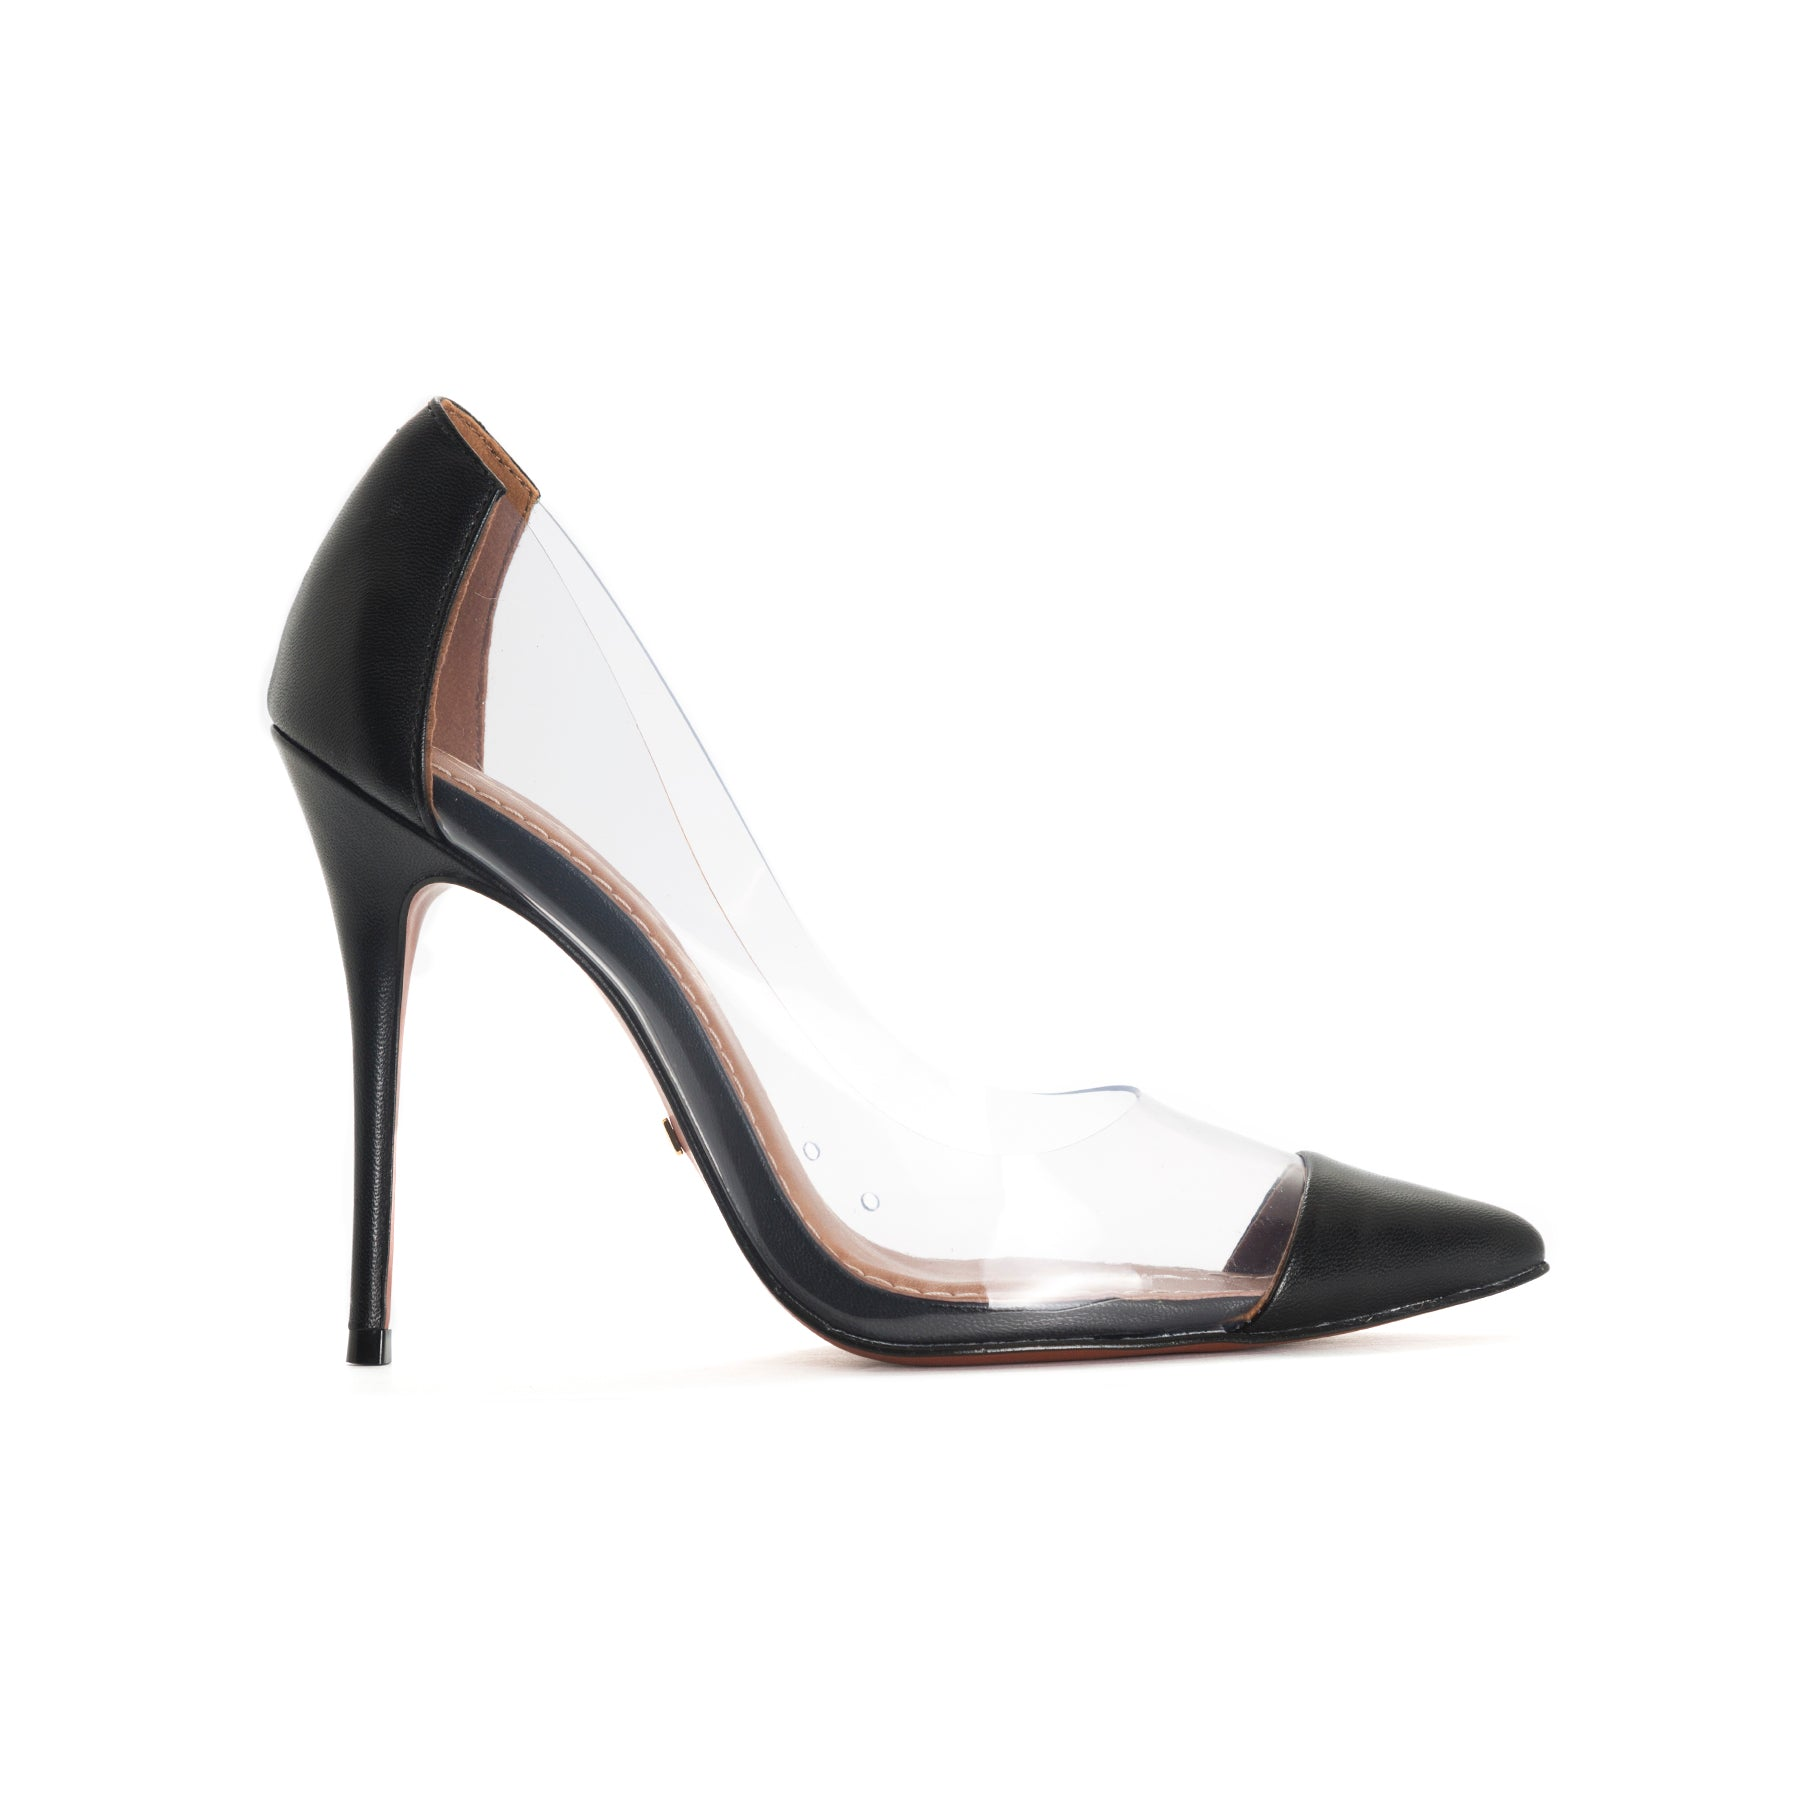 Corazon Black Leather Pumps